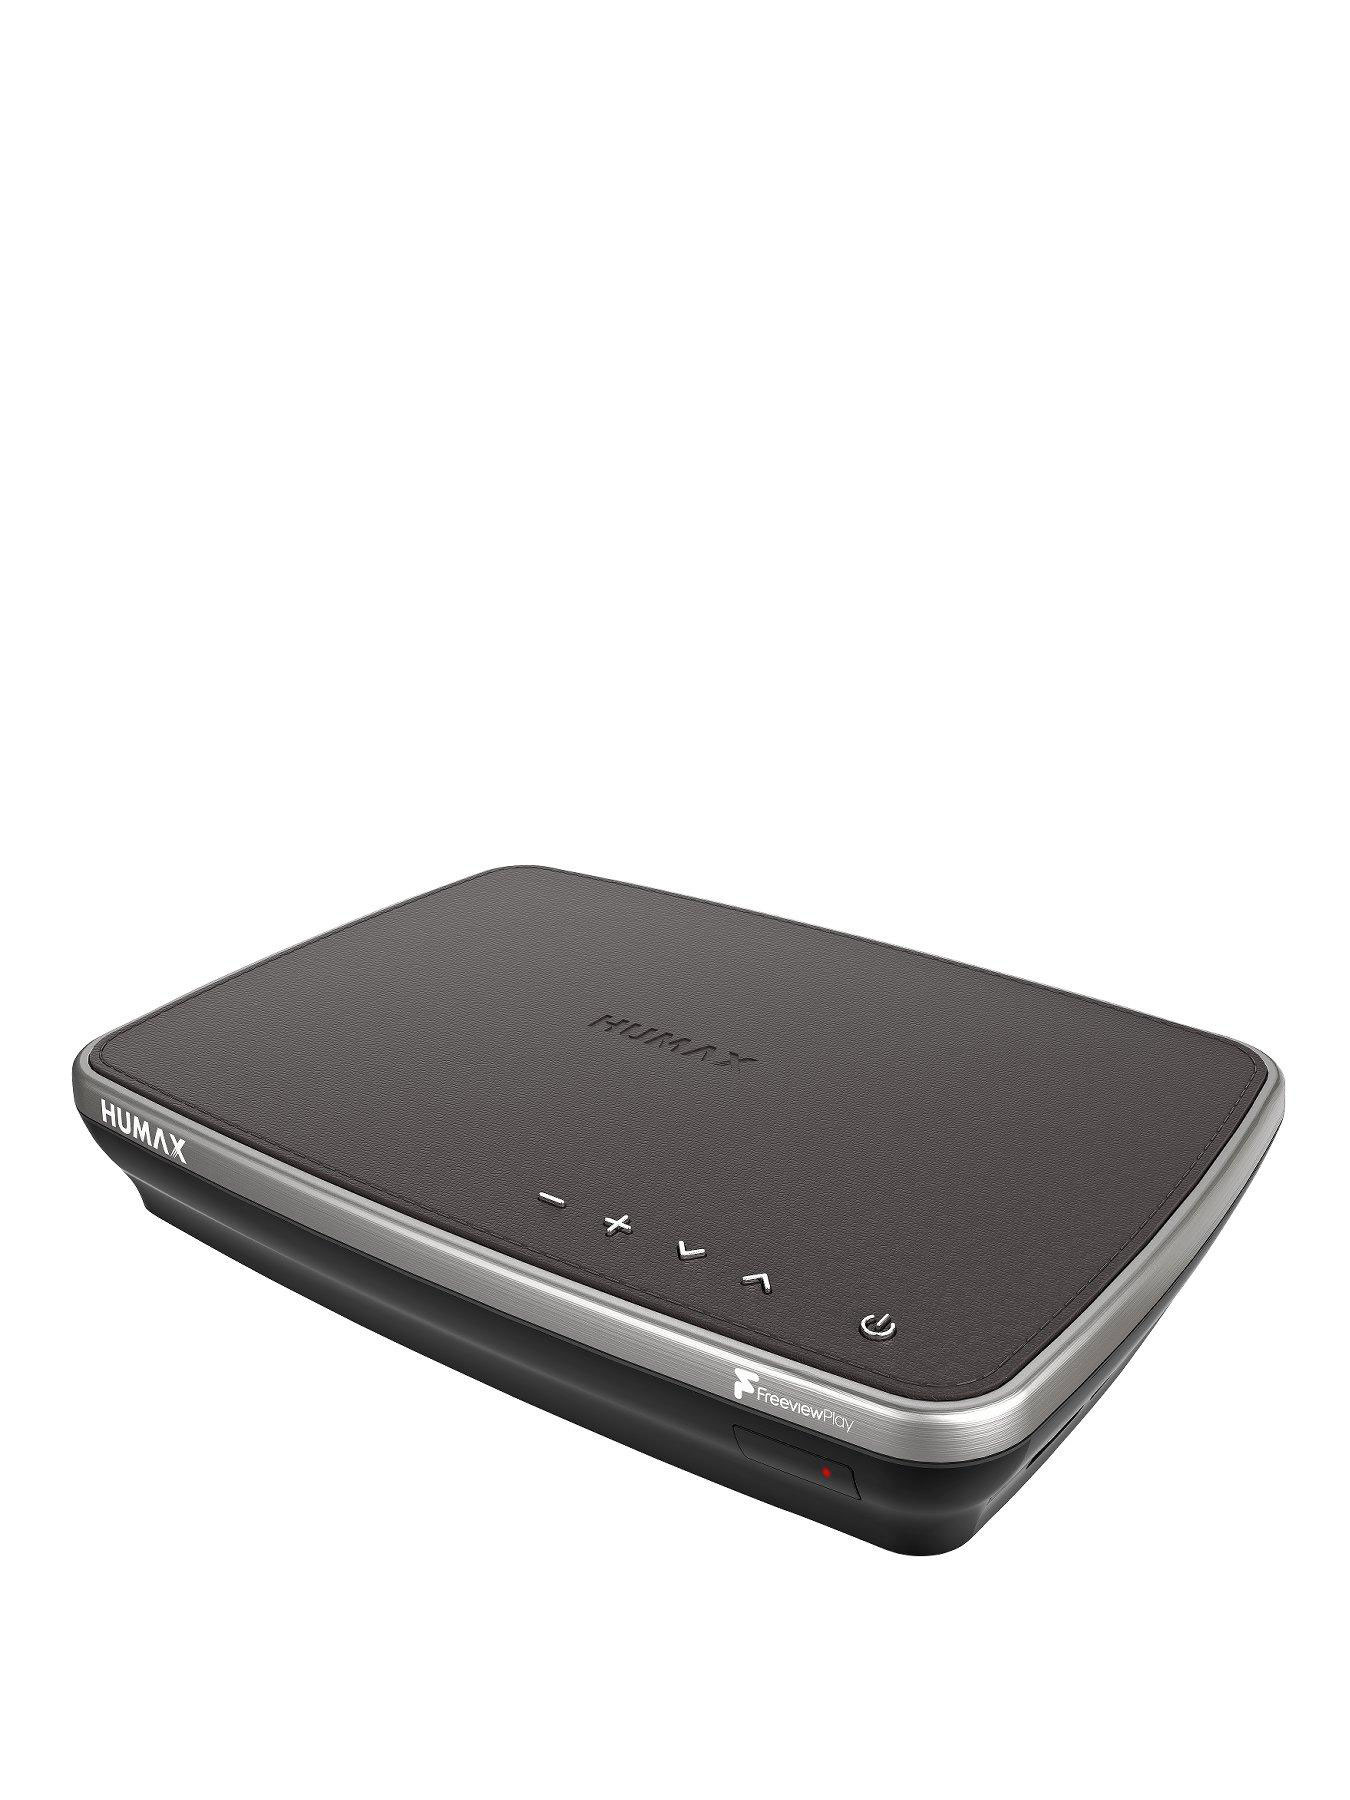 Humax FVP4000T 500GB Freeview PVR